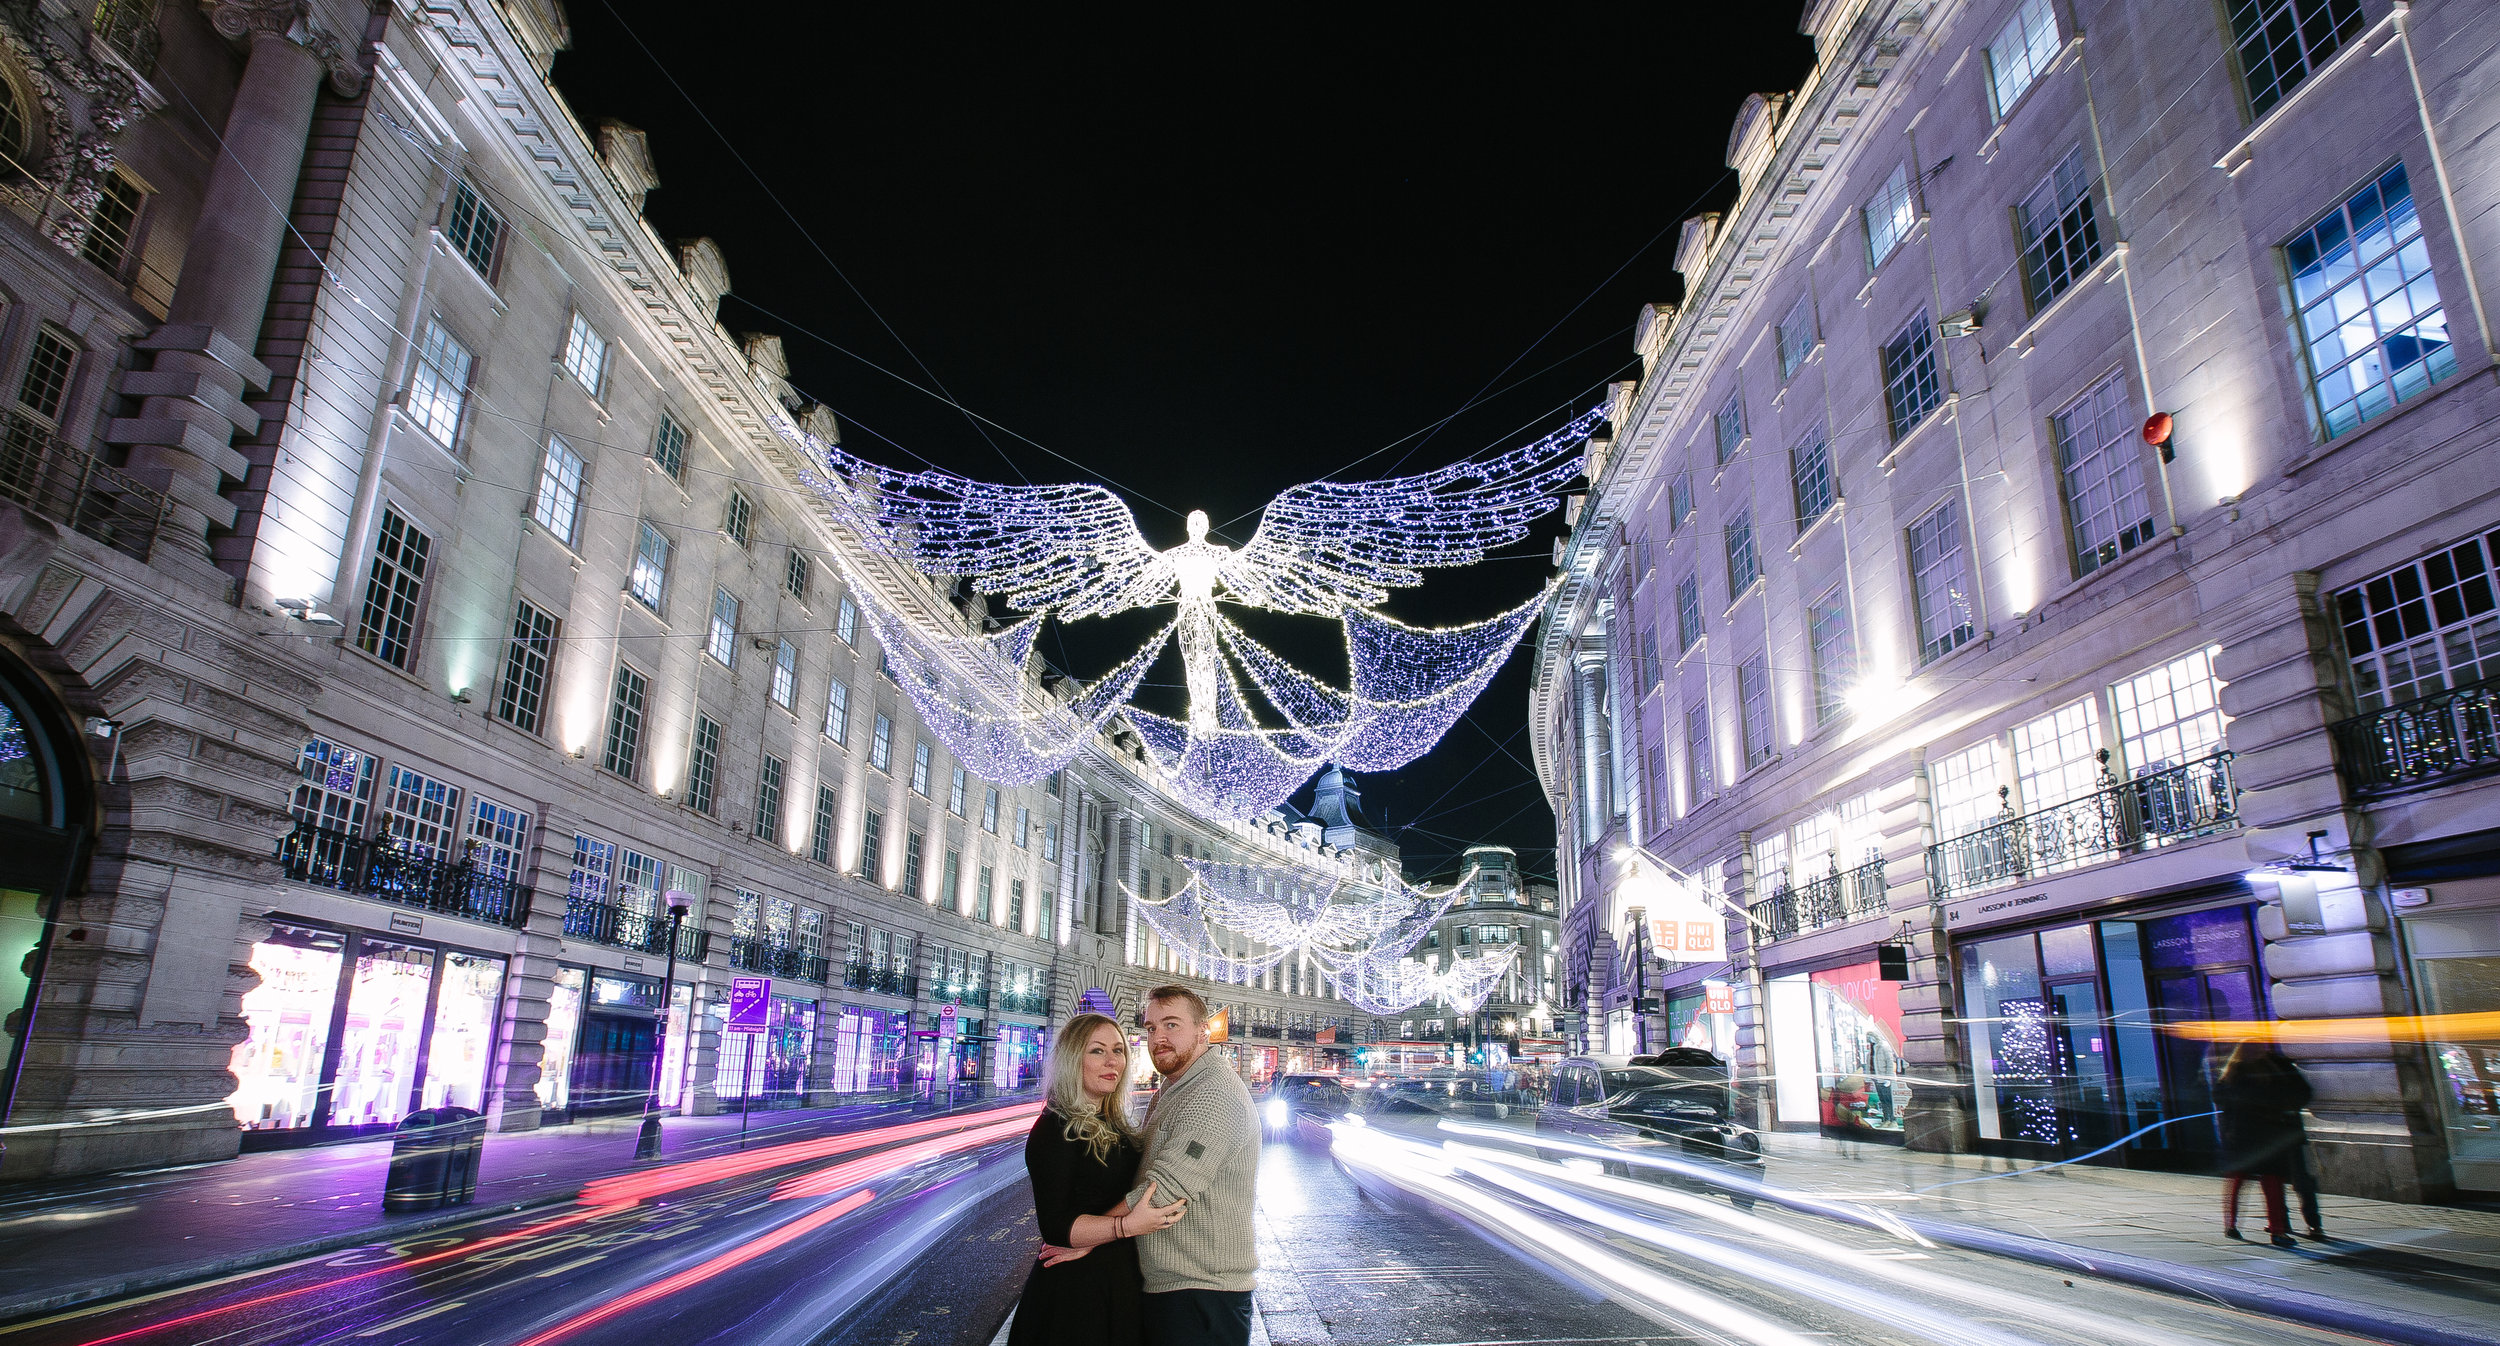 regents-street-christmas-lights-london-engagement-wedding-photography-01.jpeg